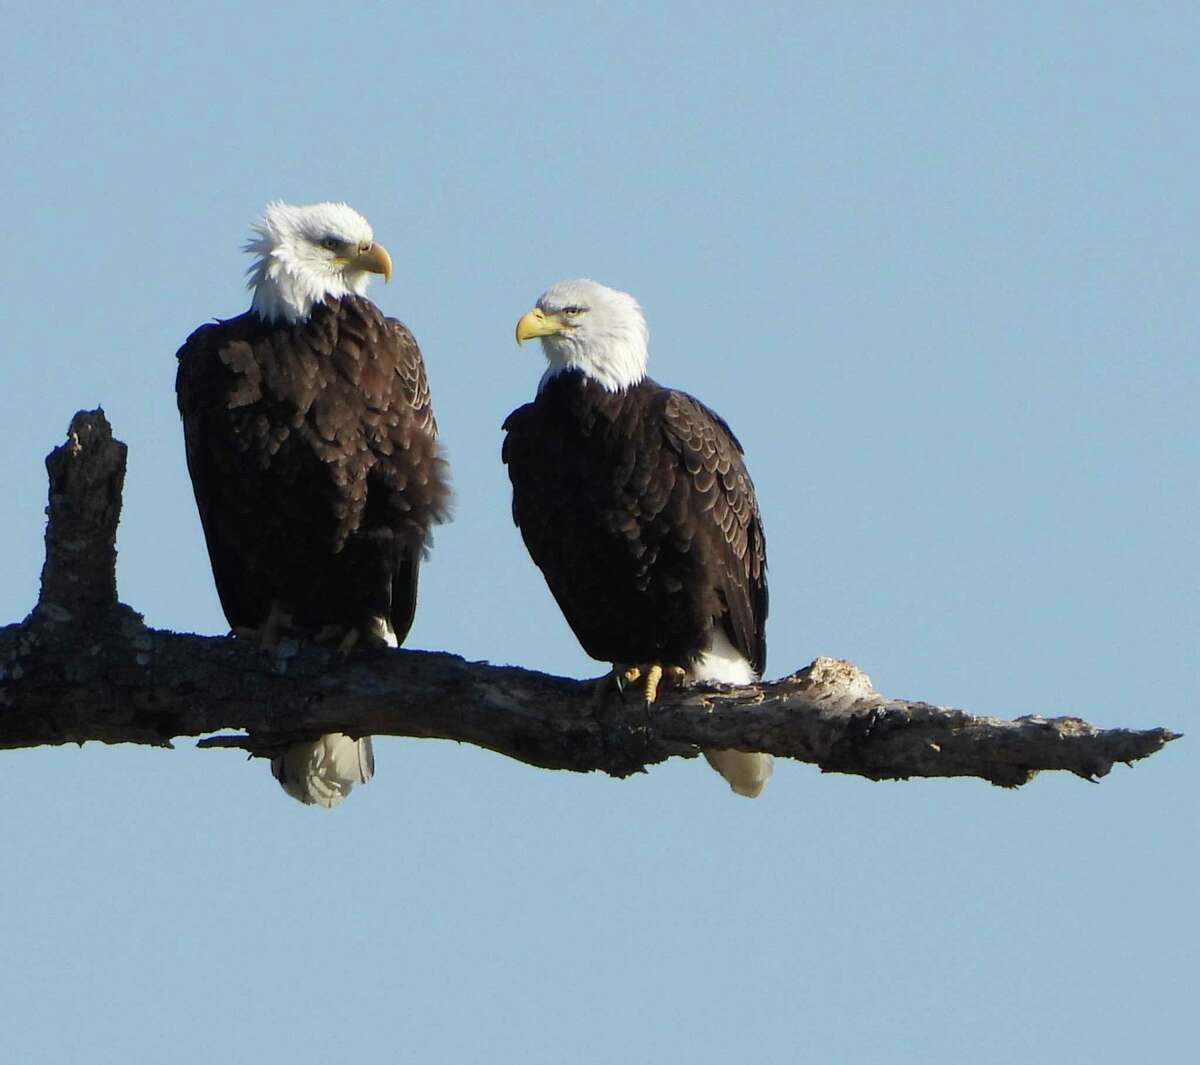 RiverQuest and the Connecticut River Museum are offering trips on the lower Connecticut River for Winter Wildlife Eagle Boat Cruises, through March 15.